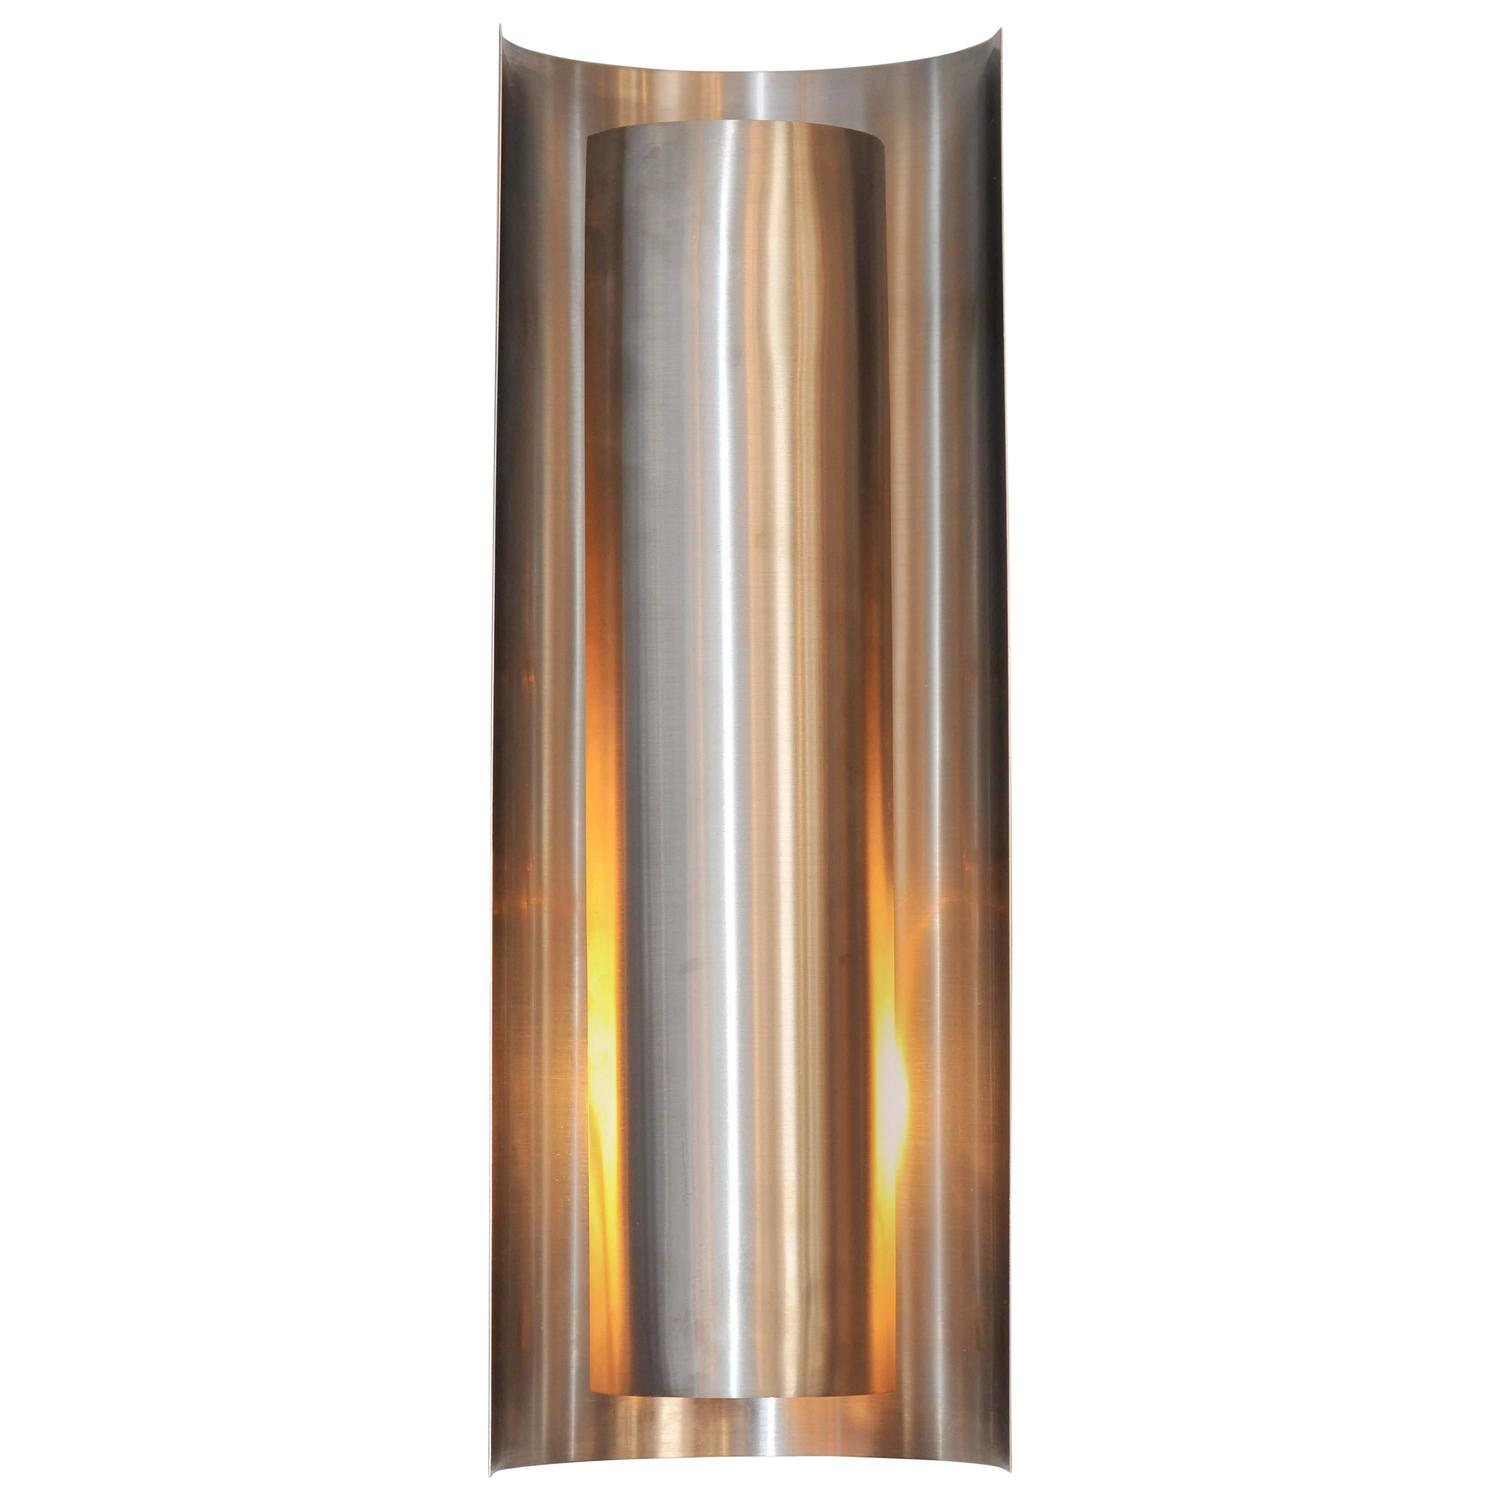 contemporary wall light in brushed stainless steel and. Black Bedroom Furniture Sets. Home Design Ideas